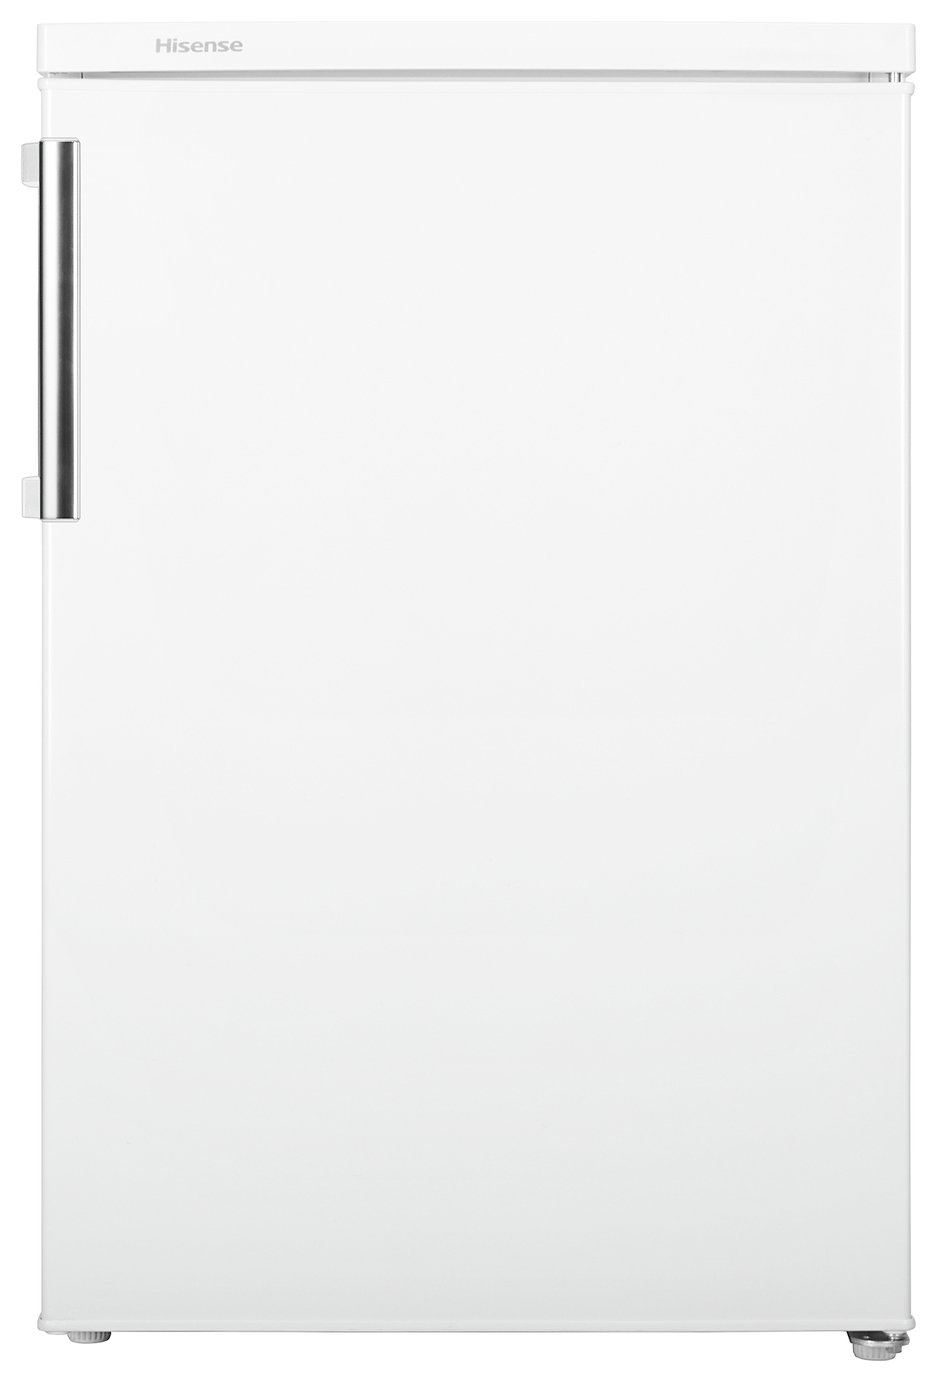 Hisense FV105D4BW21 Under Counter Freezer - White